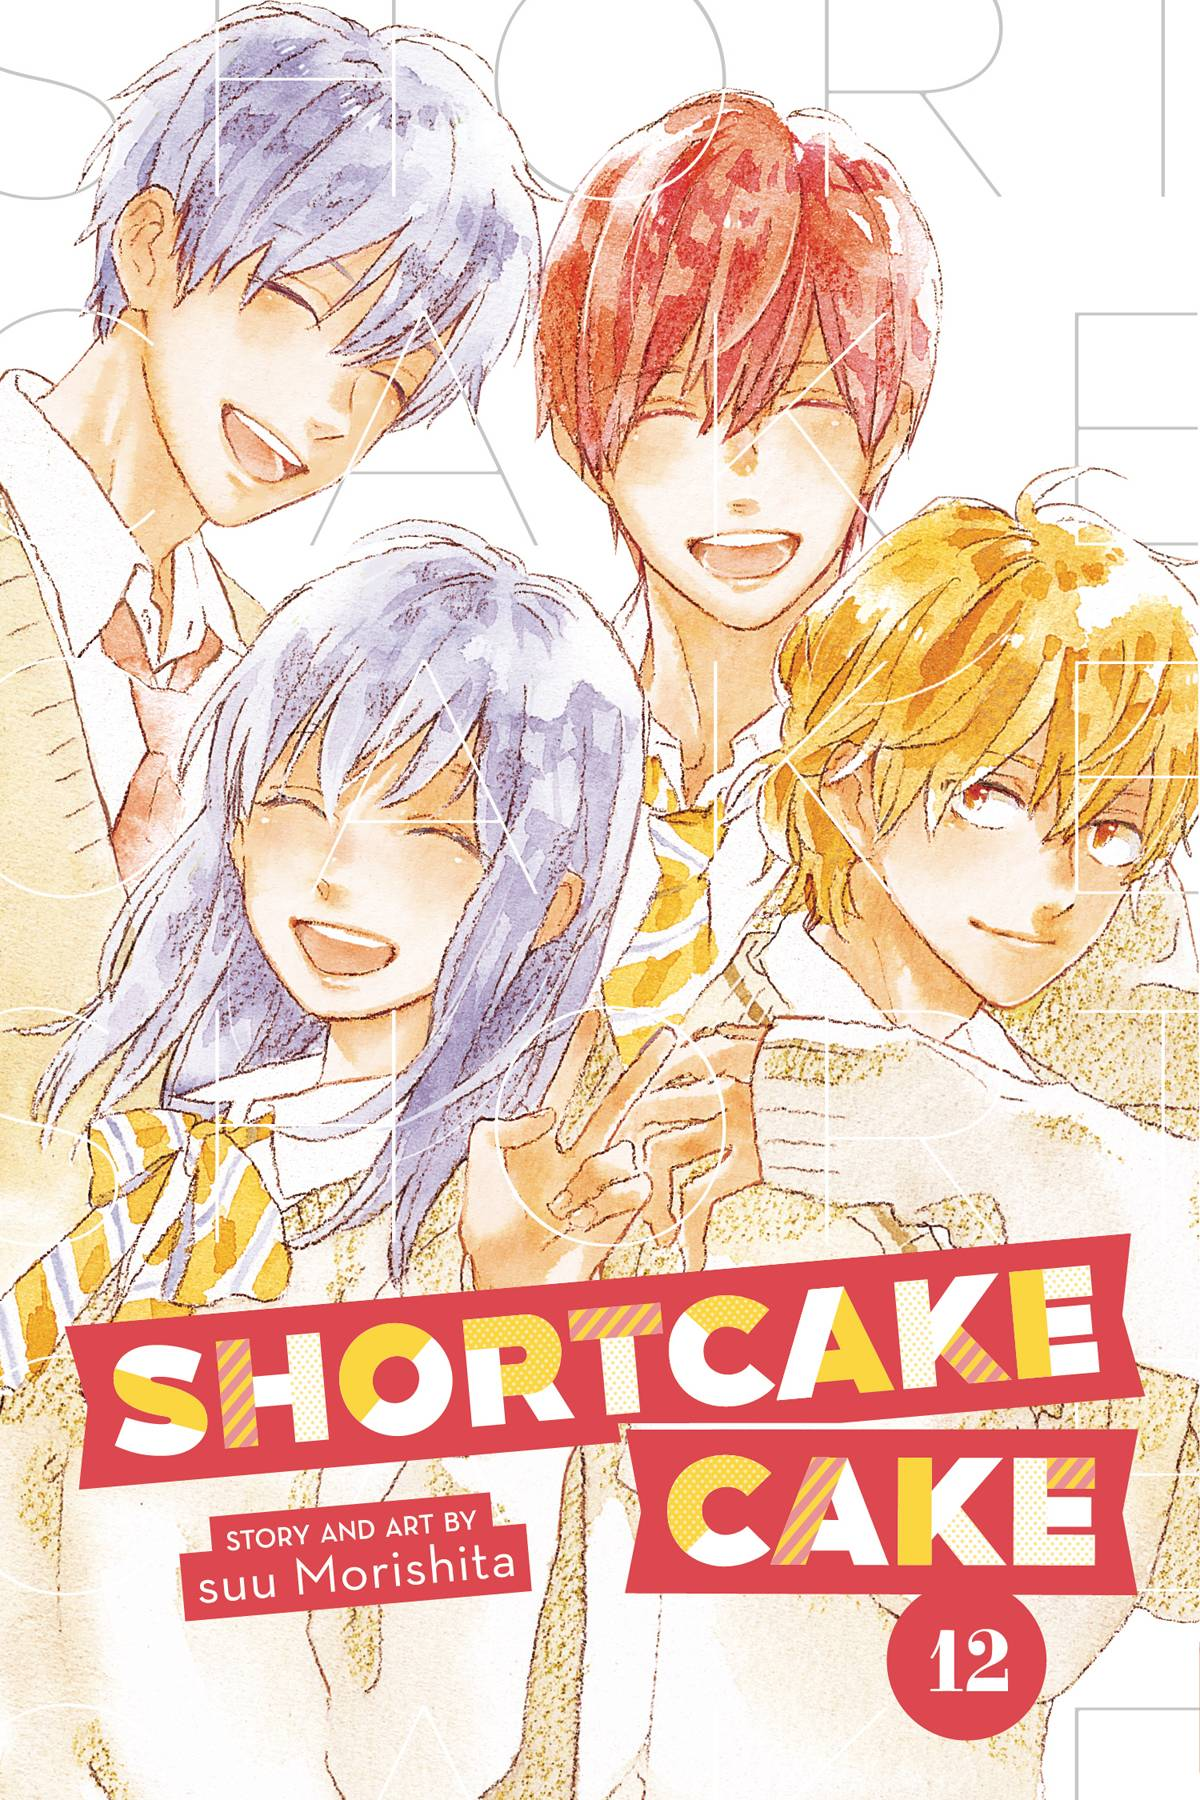 SHORTCAKE CAKE GN VOL 12 (OF 12)